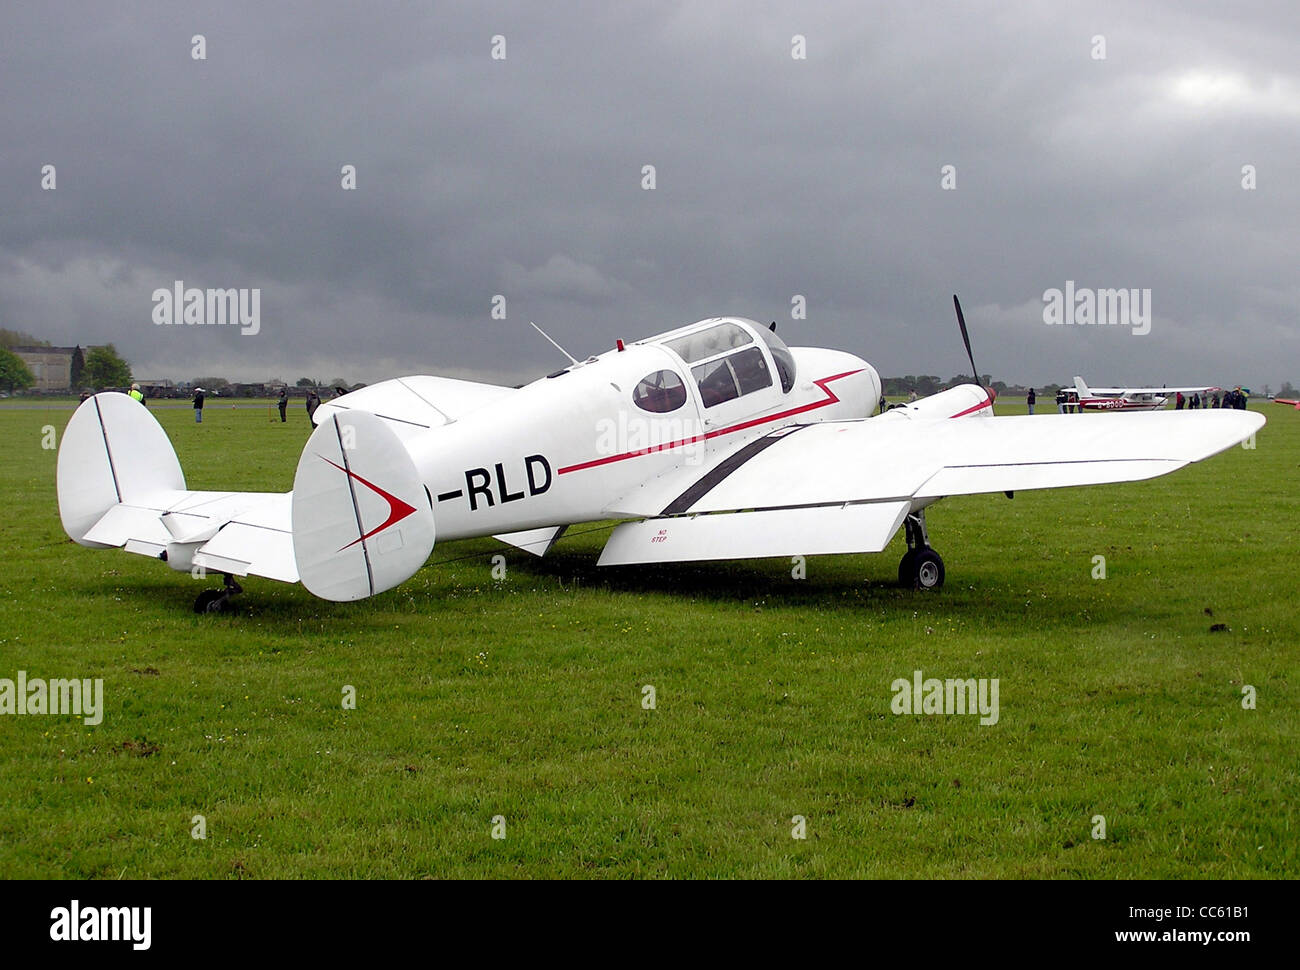 Miles M65 Gemini 1A (Belgium registration OO-RLD, date of build 1947) at Kemble Airfield, Gloucestershire, England. - Stock Image